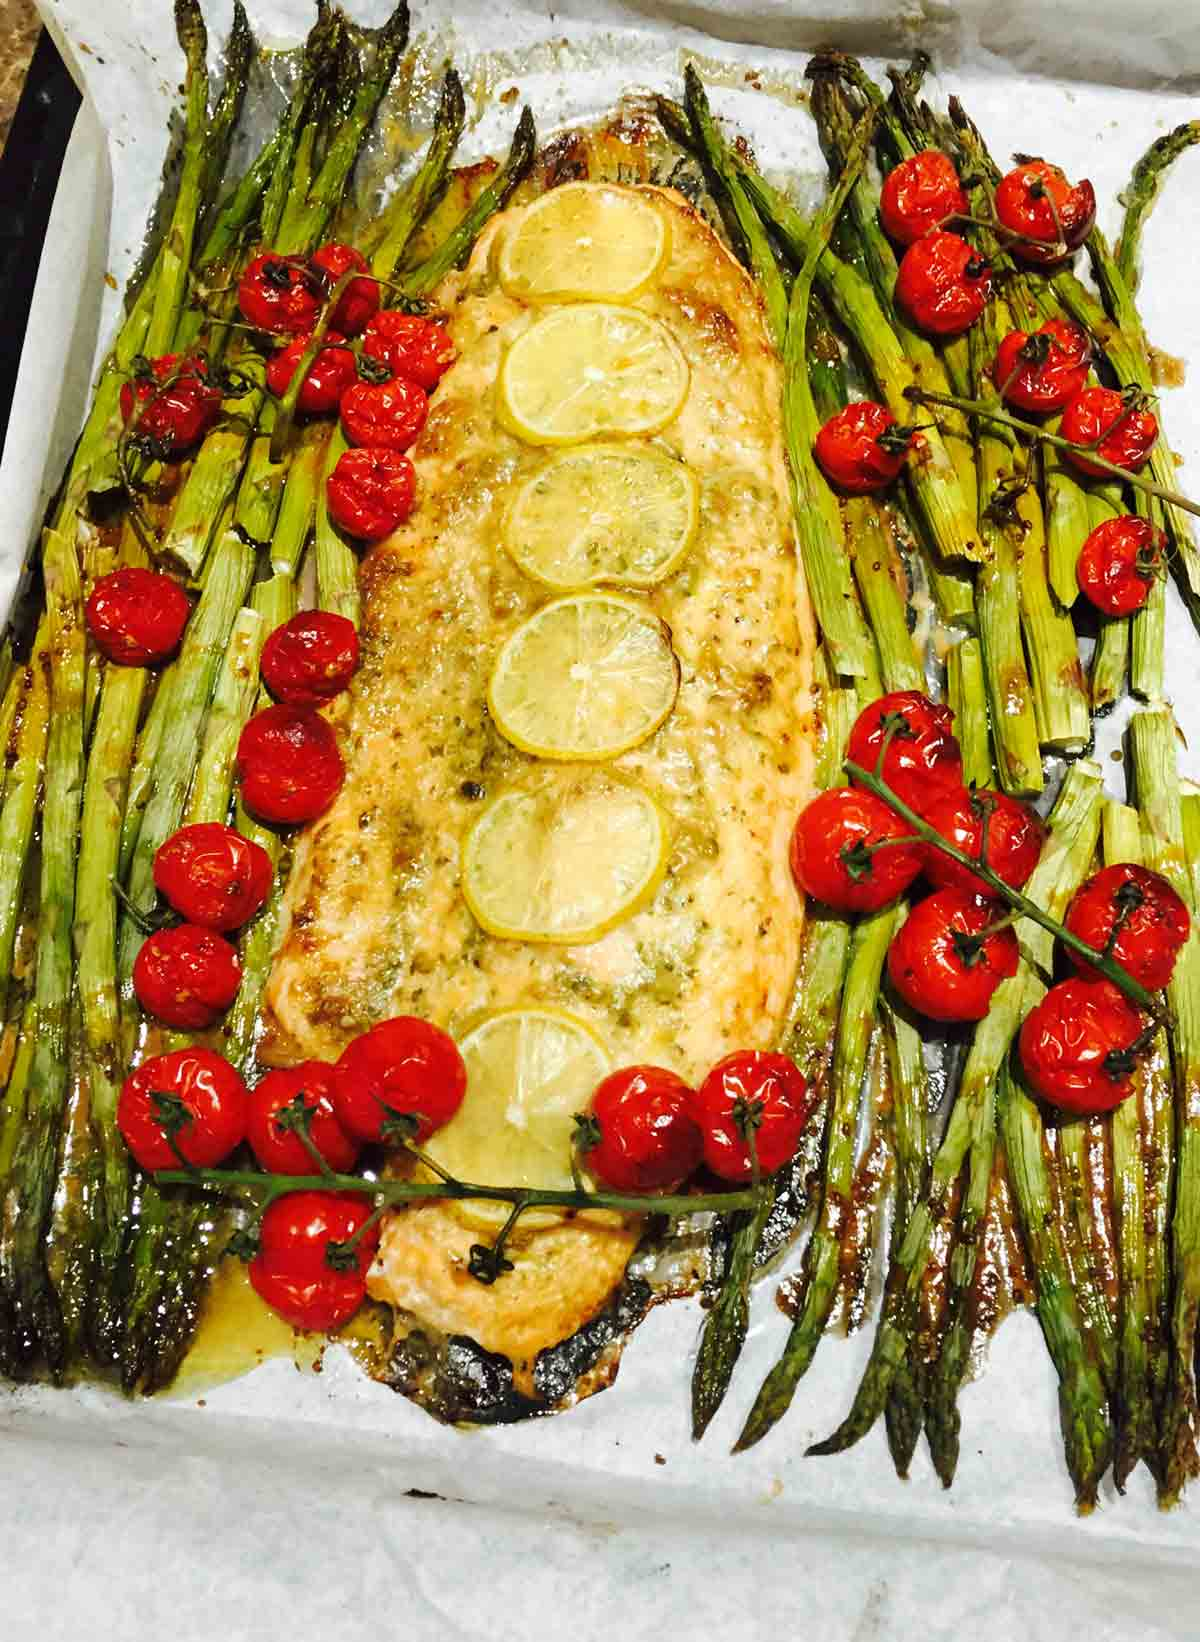 This salmon pesto and asparagus bake is a great dish idea for parties, absolutely fast to prepare and delicious.